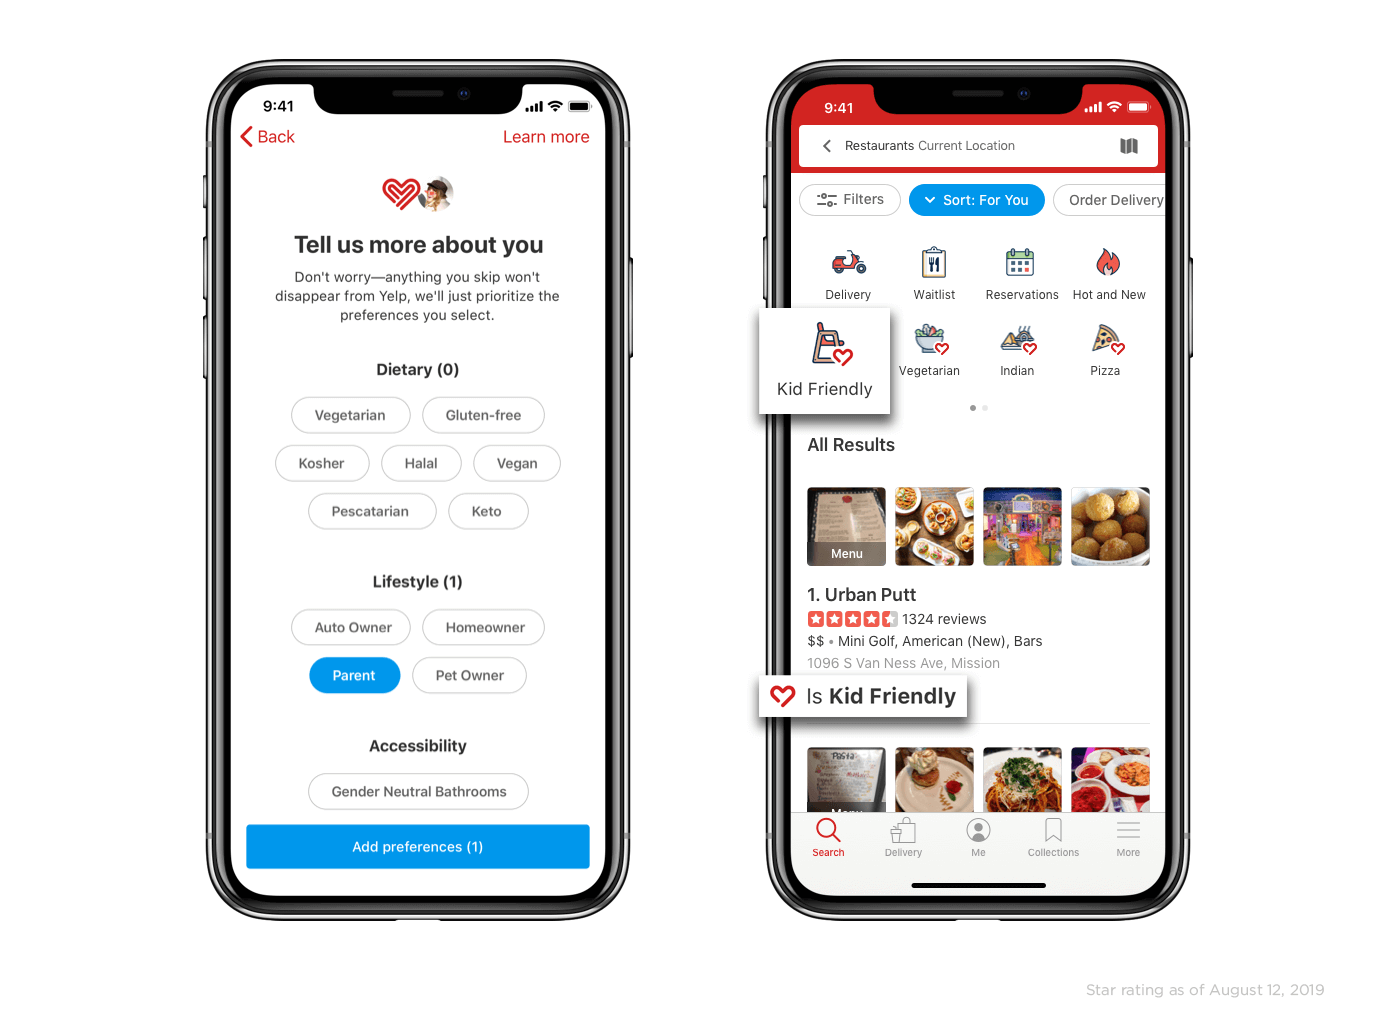 Yelp Updates App to Include Dietary Preferences, Accessibility Search